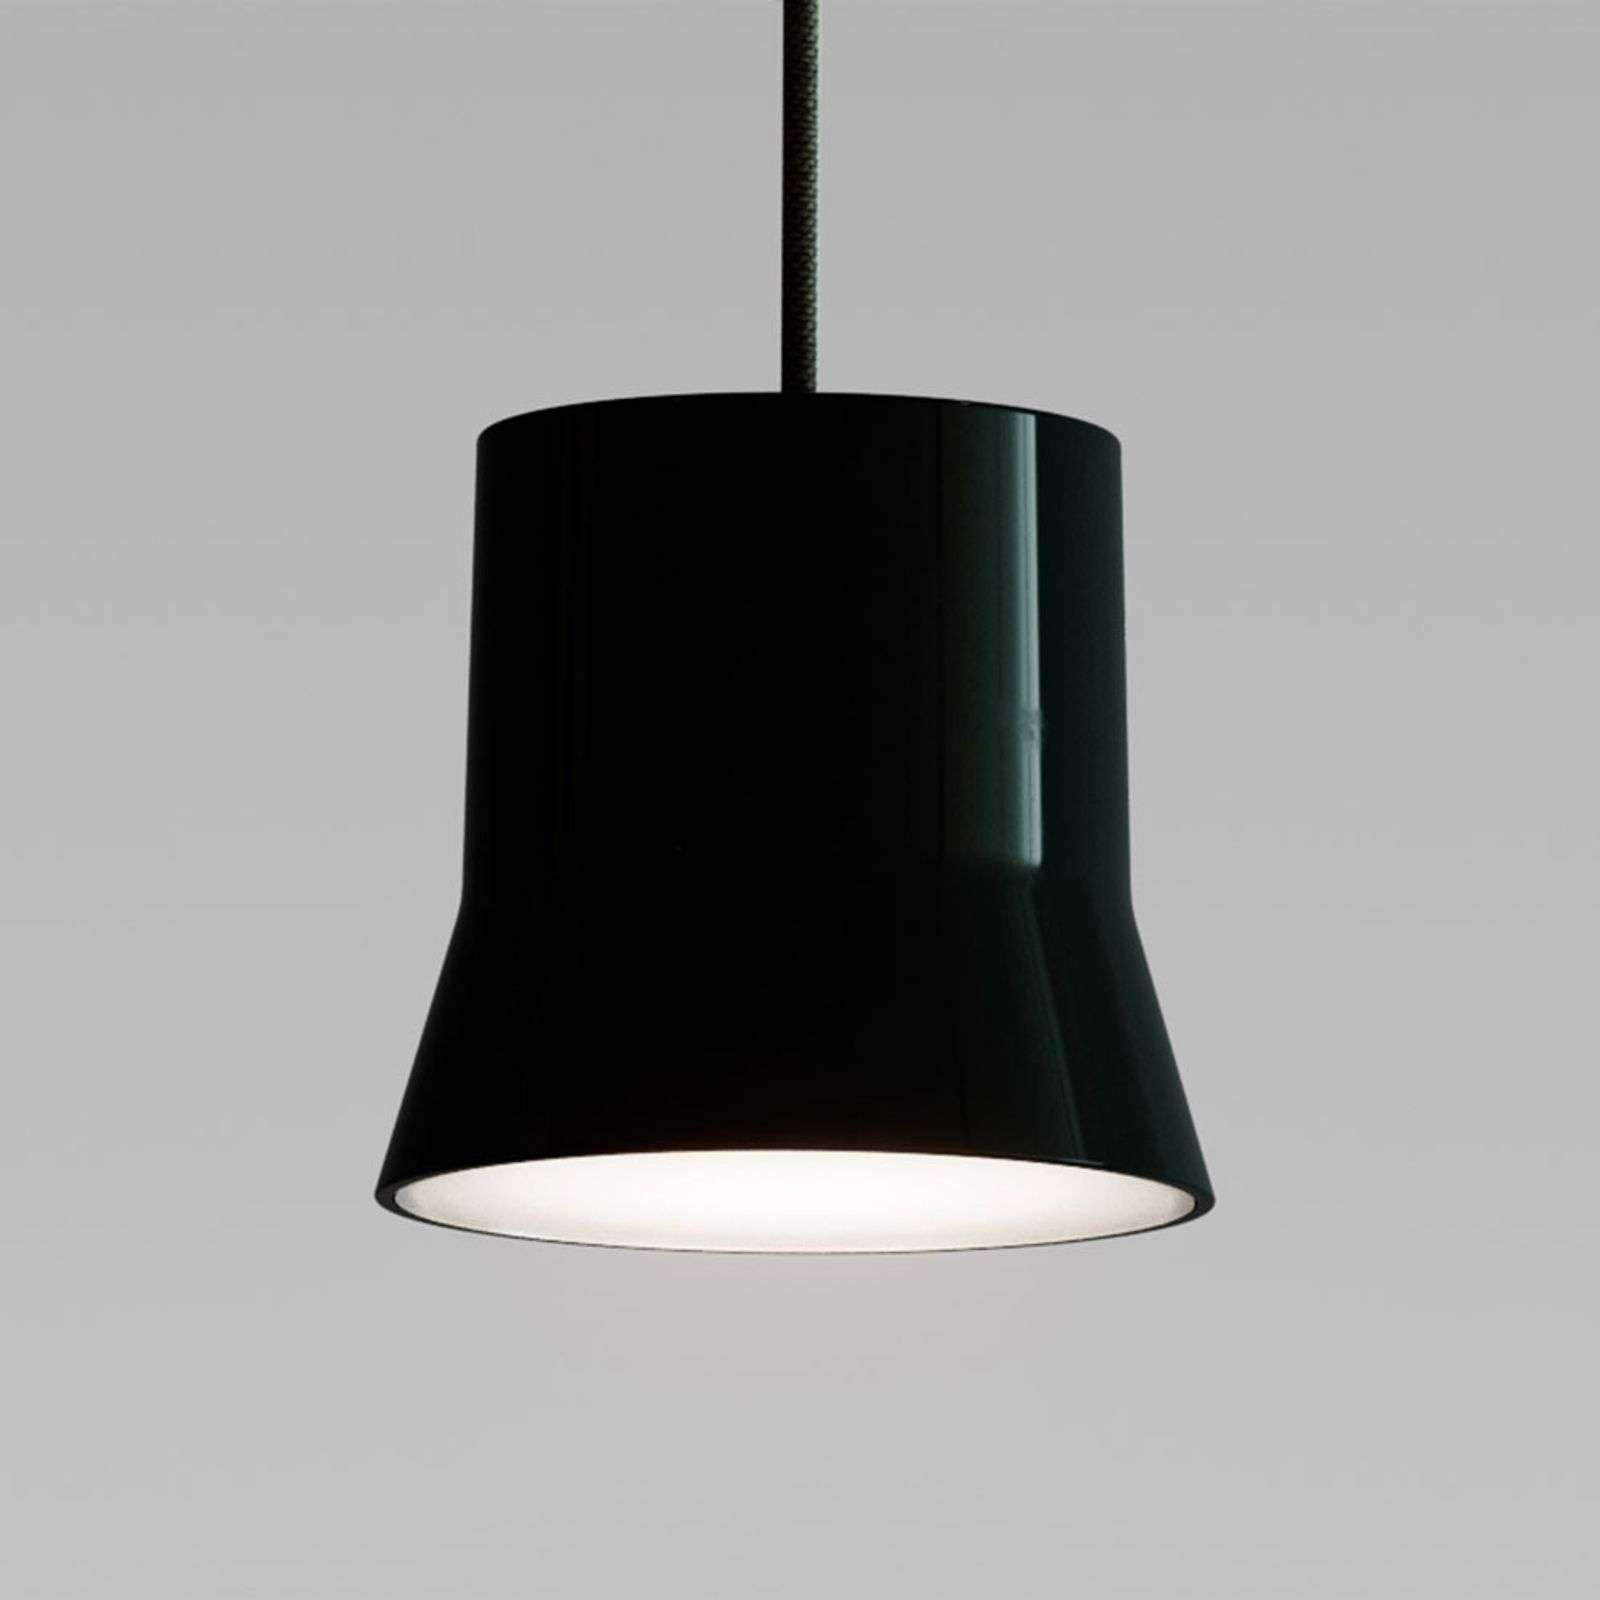 Artemide GIO.light LED hanglamp, zwart